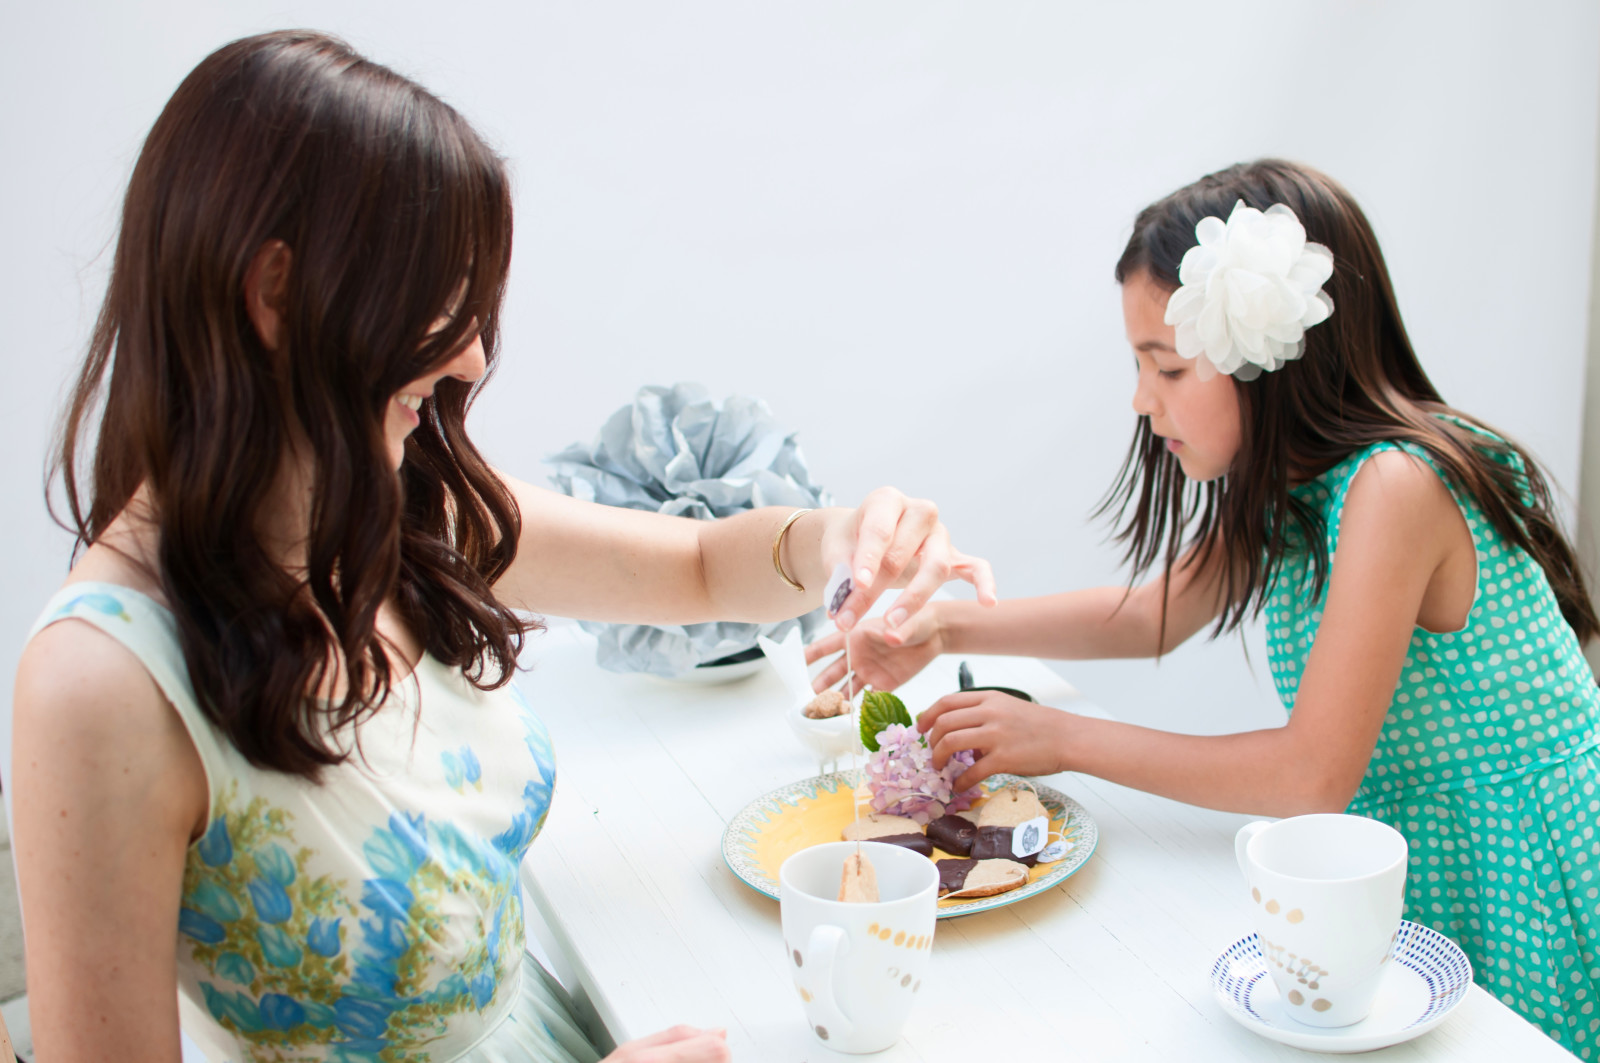 Preparing the plate of tea cookies and the table with flowers and our DIY tea cups.